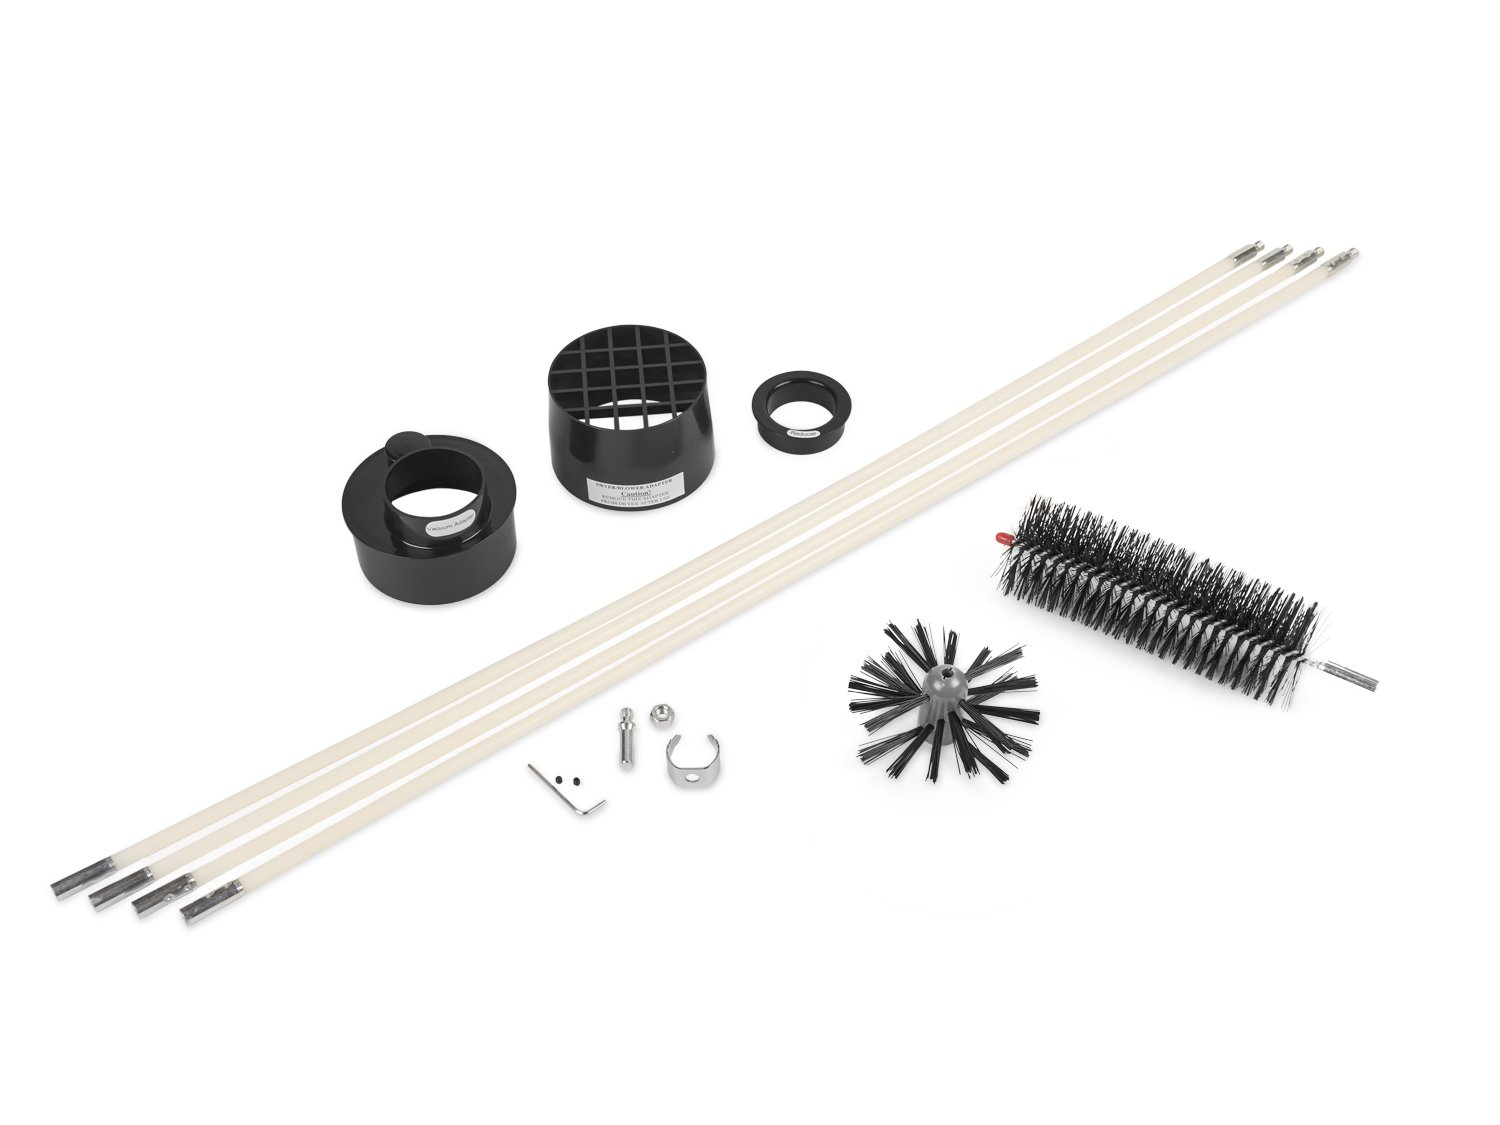 Gardus RLE202 LintEater 10-Piece Rotary Dryer Vent Cleaning System by LintEater (Image #2)